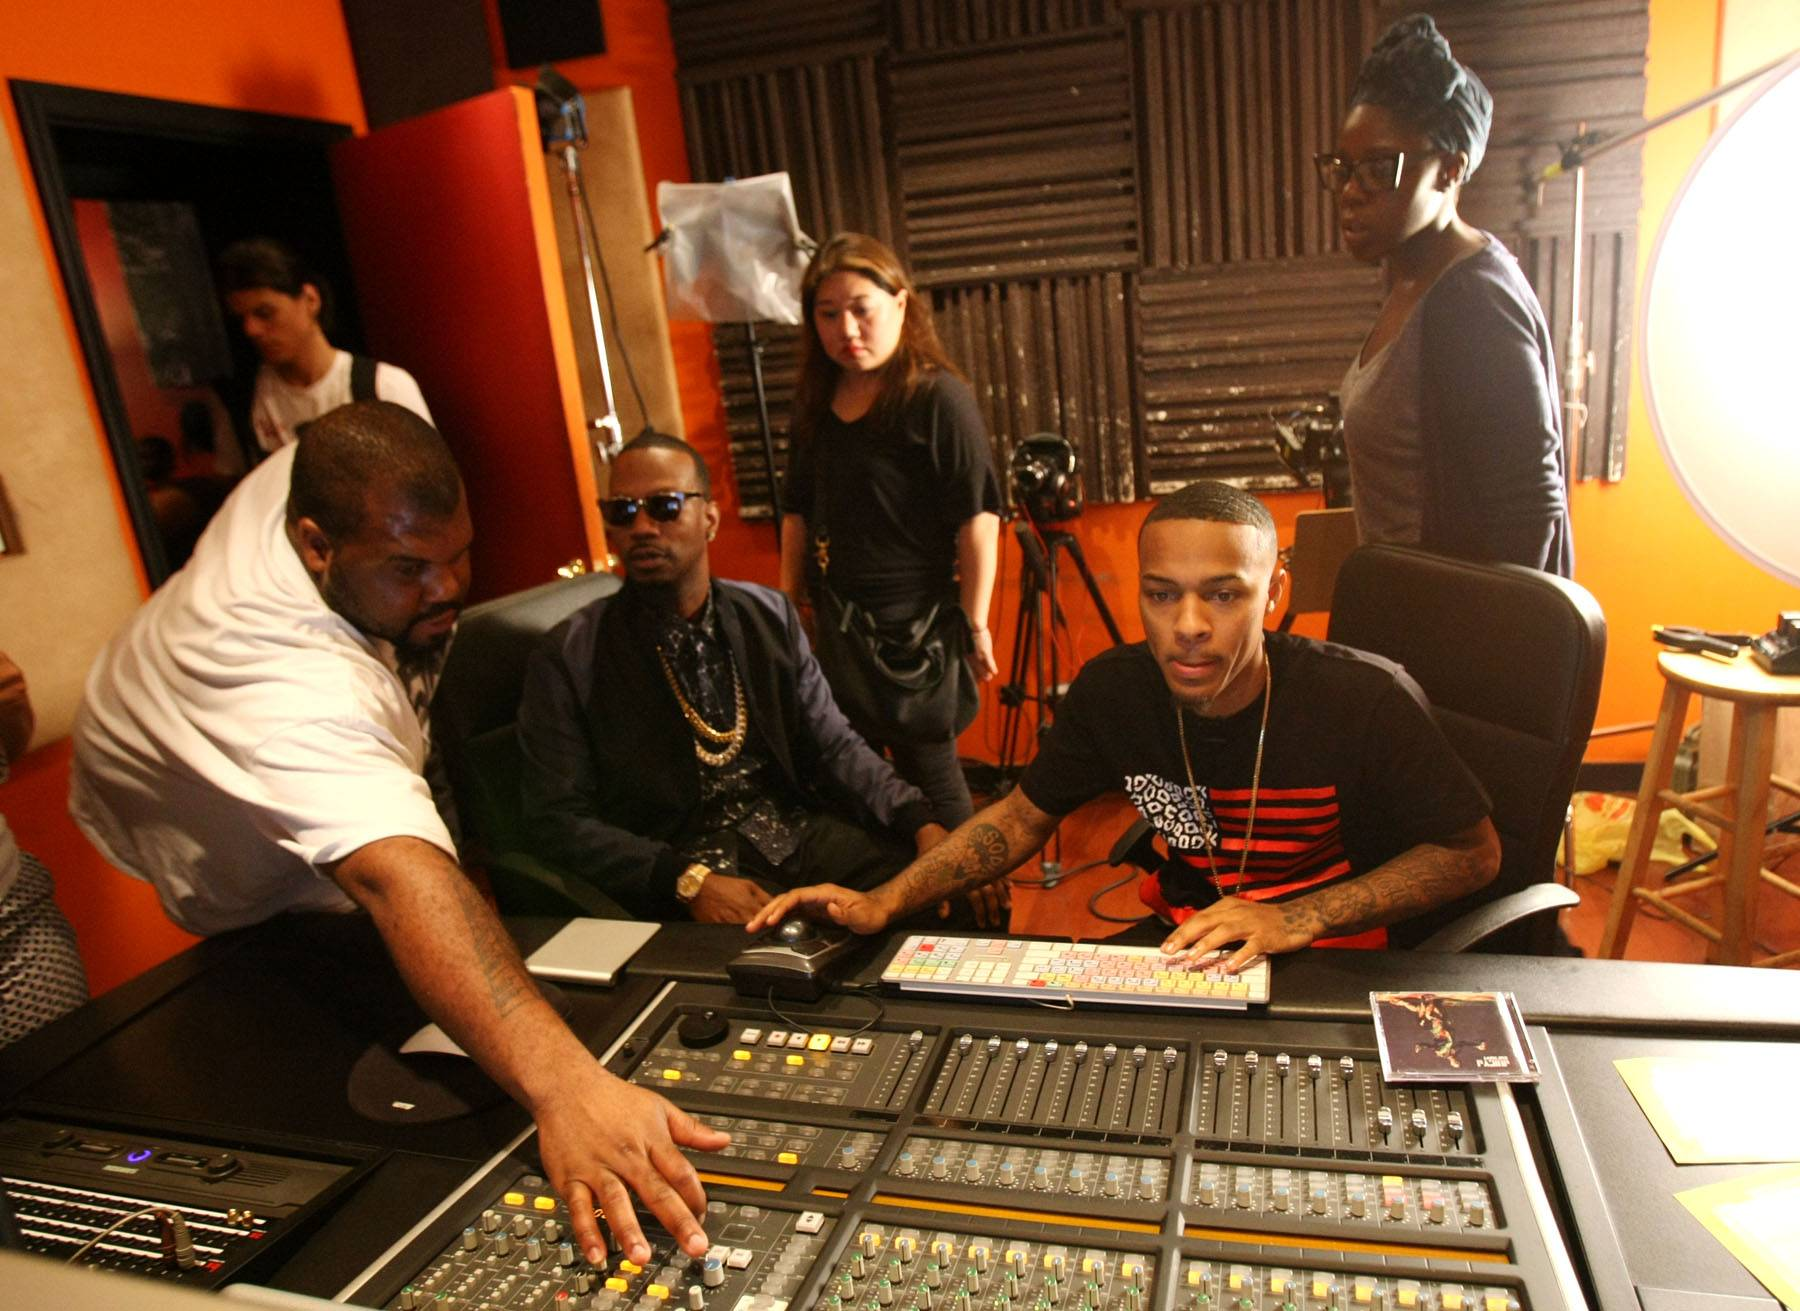 Making Heat - Juicy J and Bow Wow in the studio on 106. (Photo: Bennett Raglin/BET/Getty Images for BET)